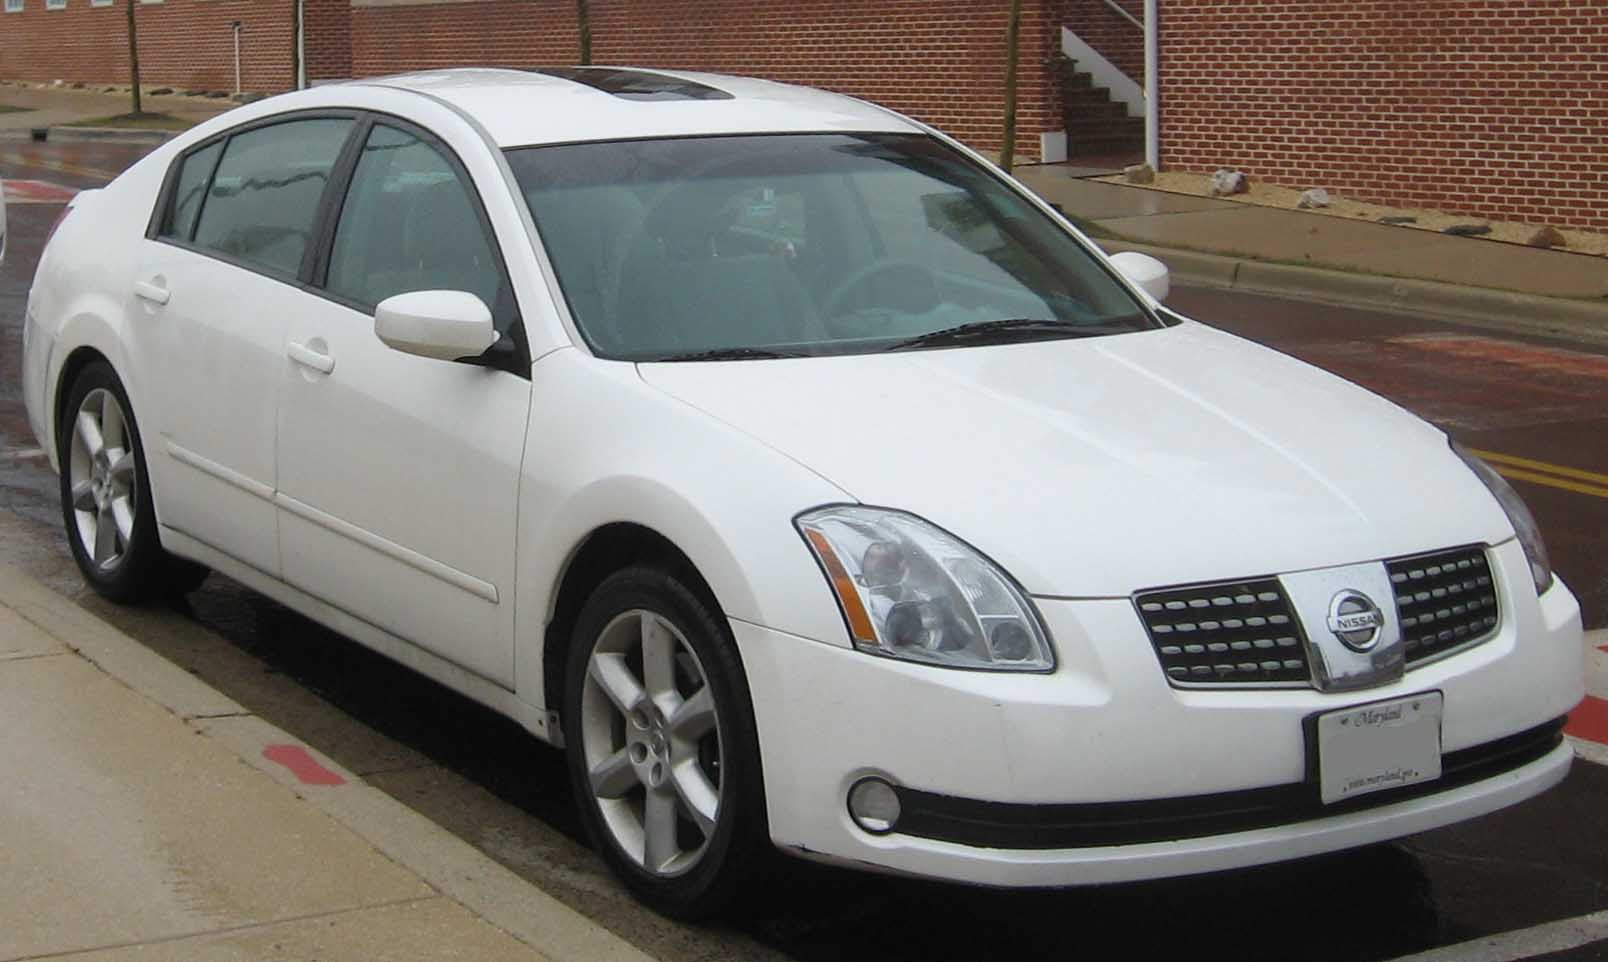 inventory for in fredericksburg details at nissan sl maxima va auction public sale auto